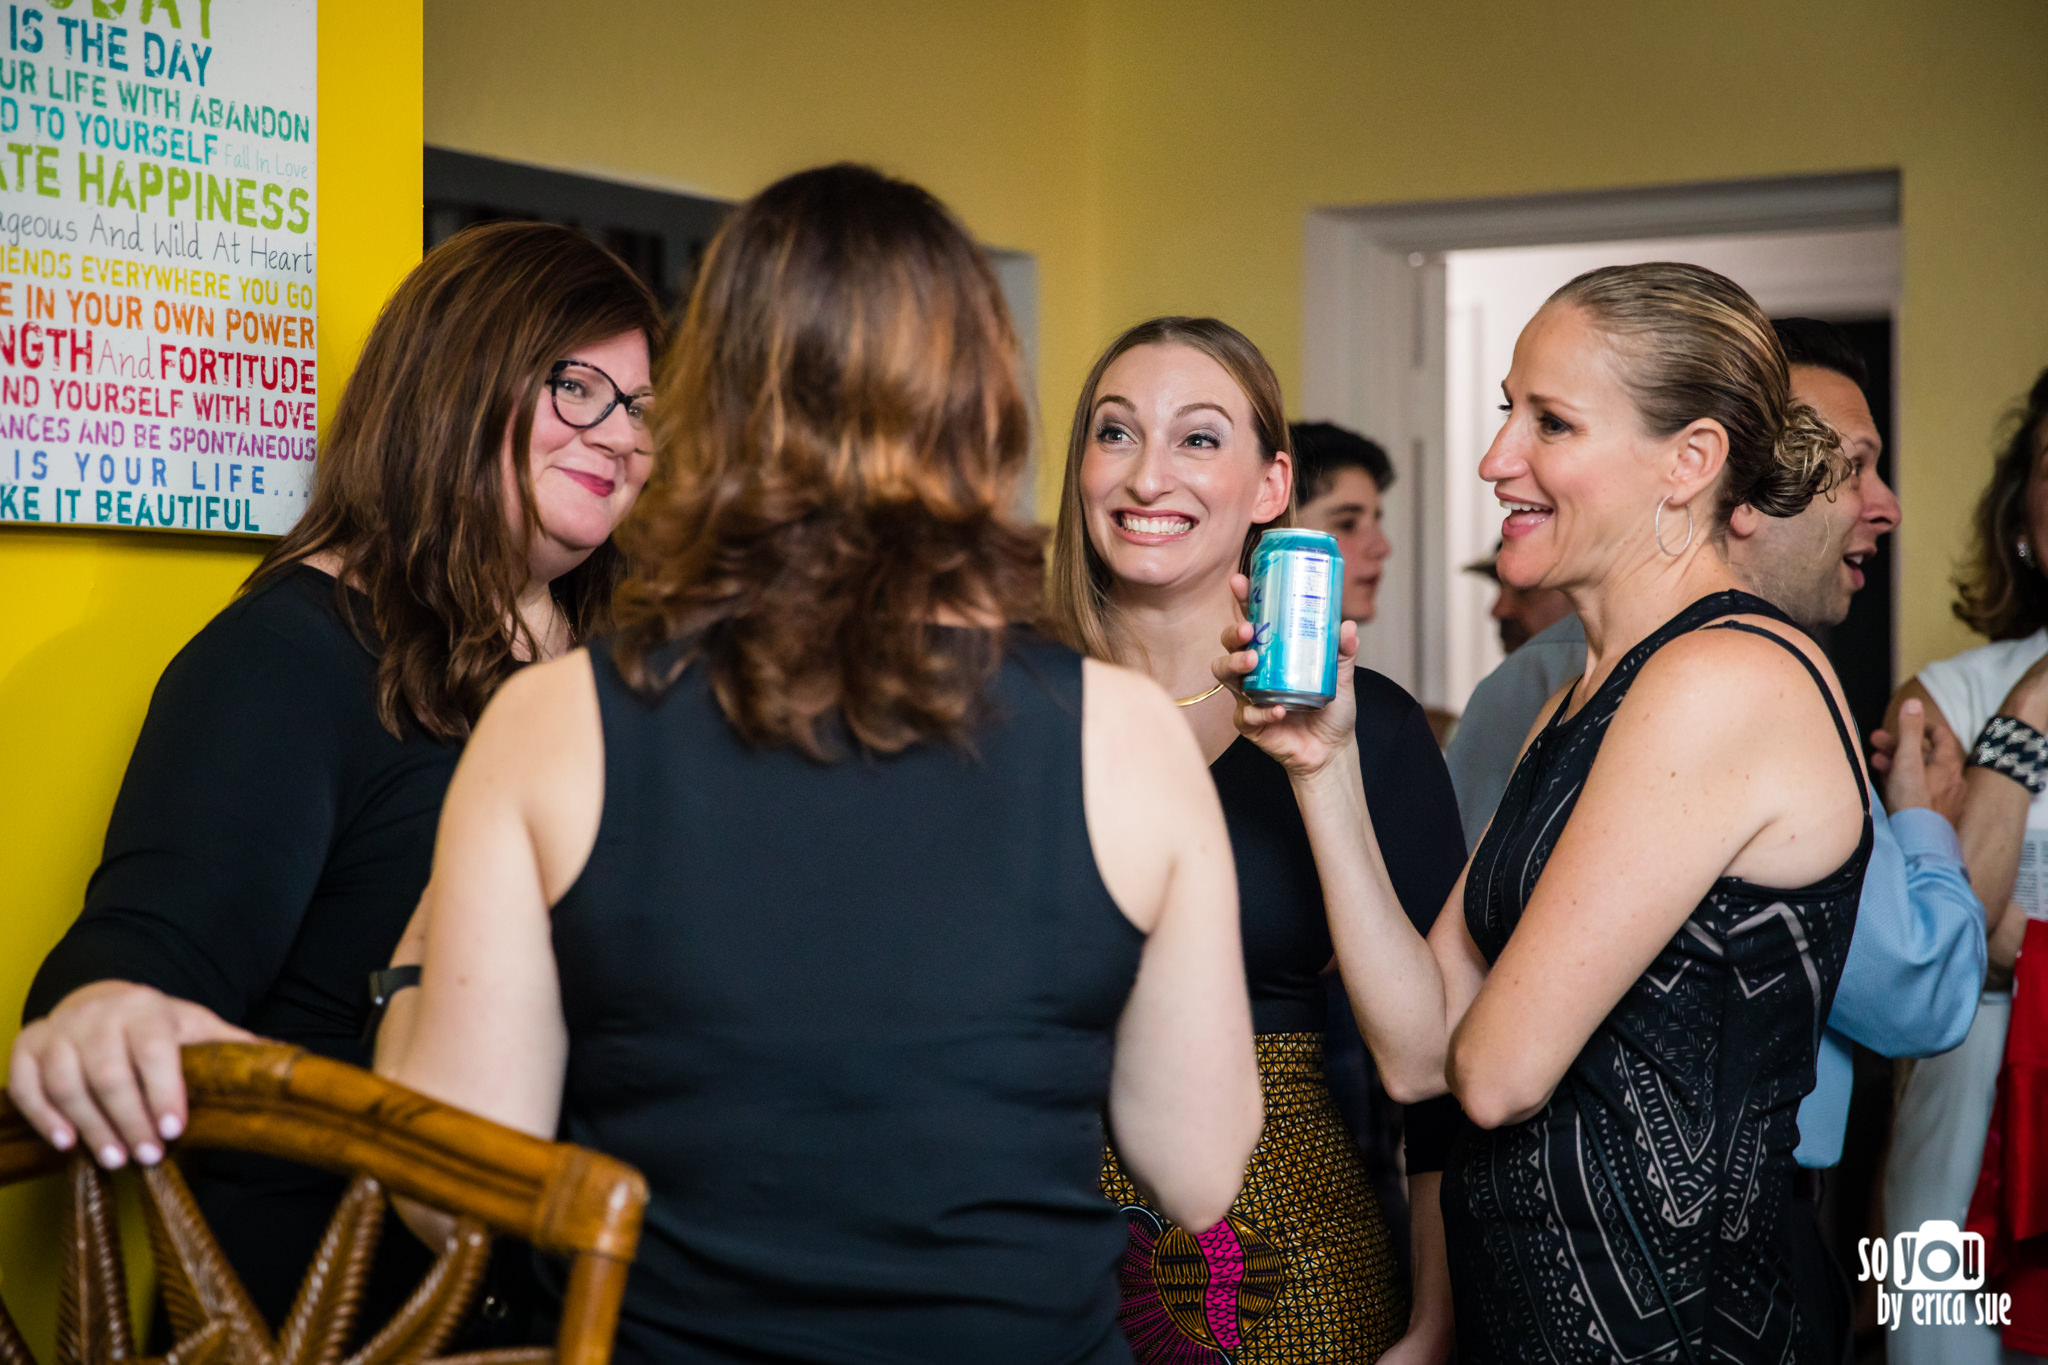 so-you-by-erica-sue-young-israel-hollywood-fl-mitzvah-photographer-6567.JPG